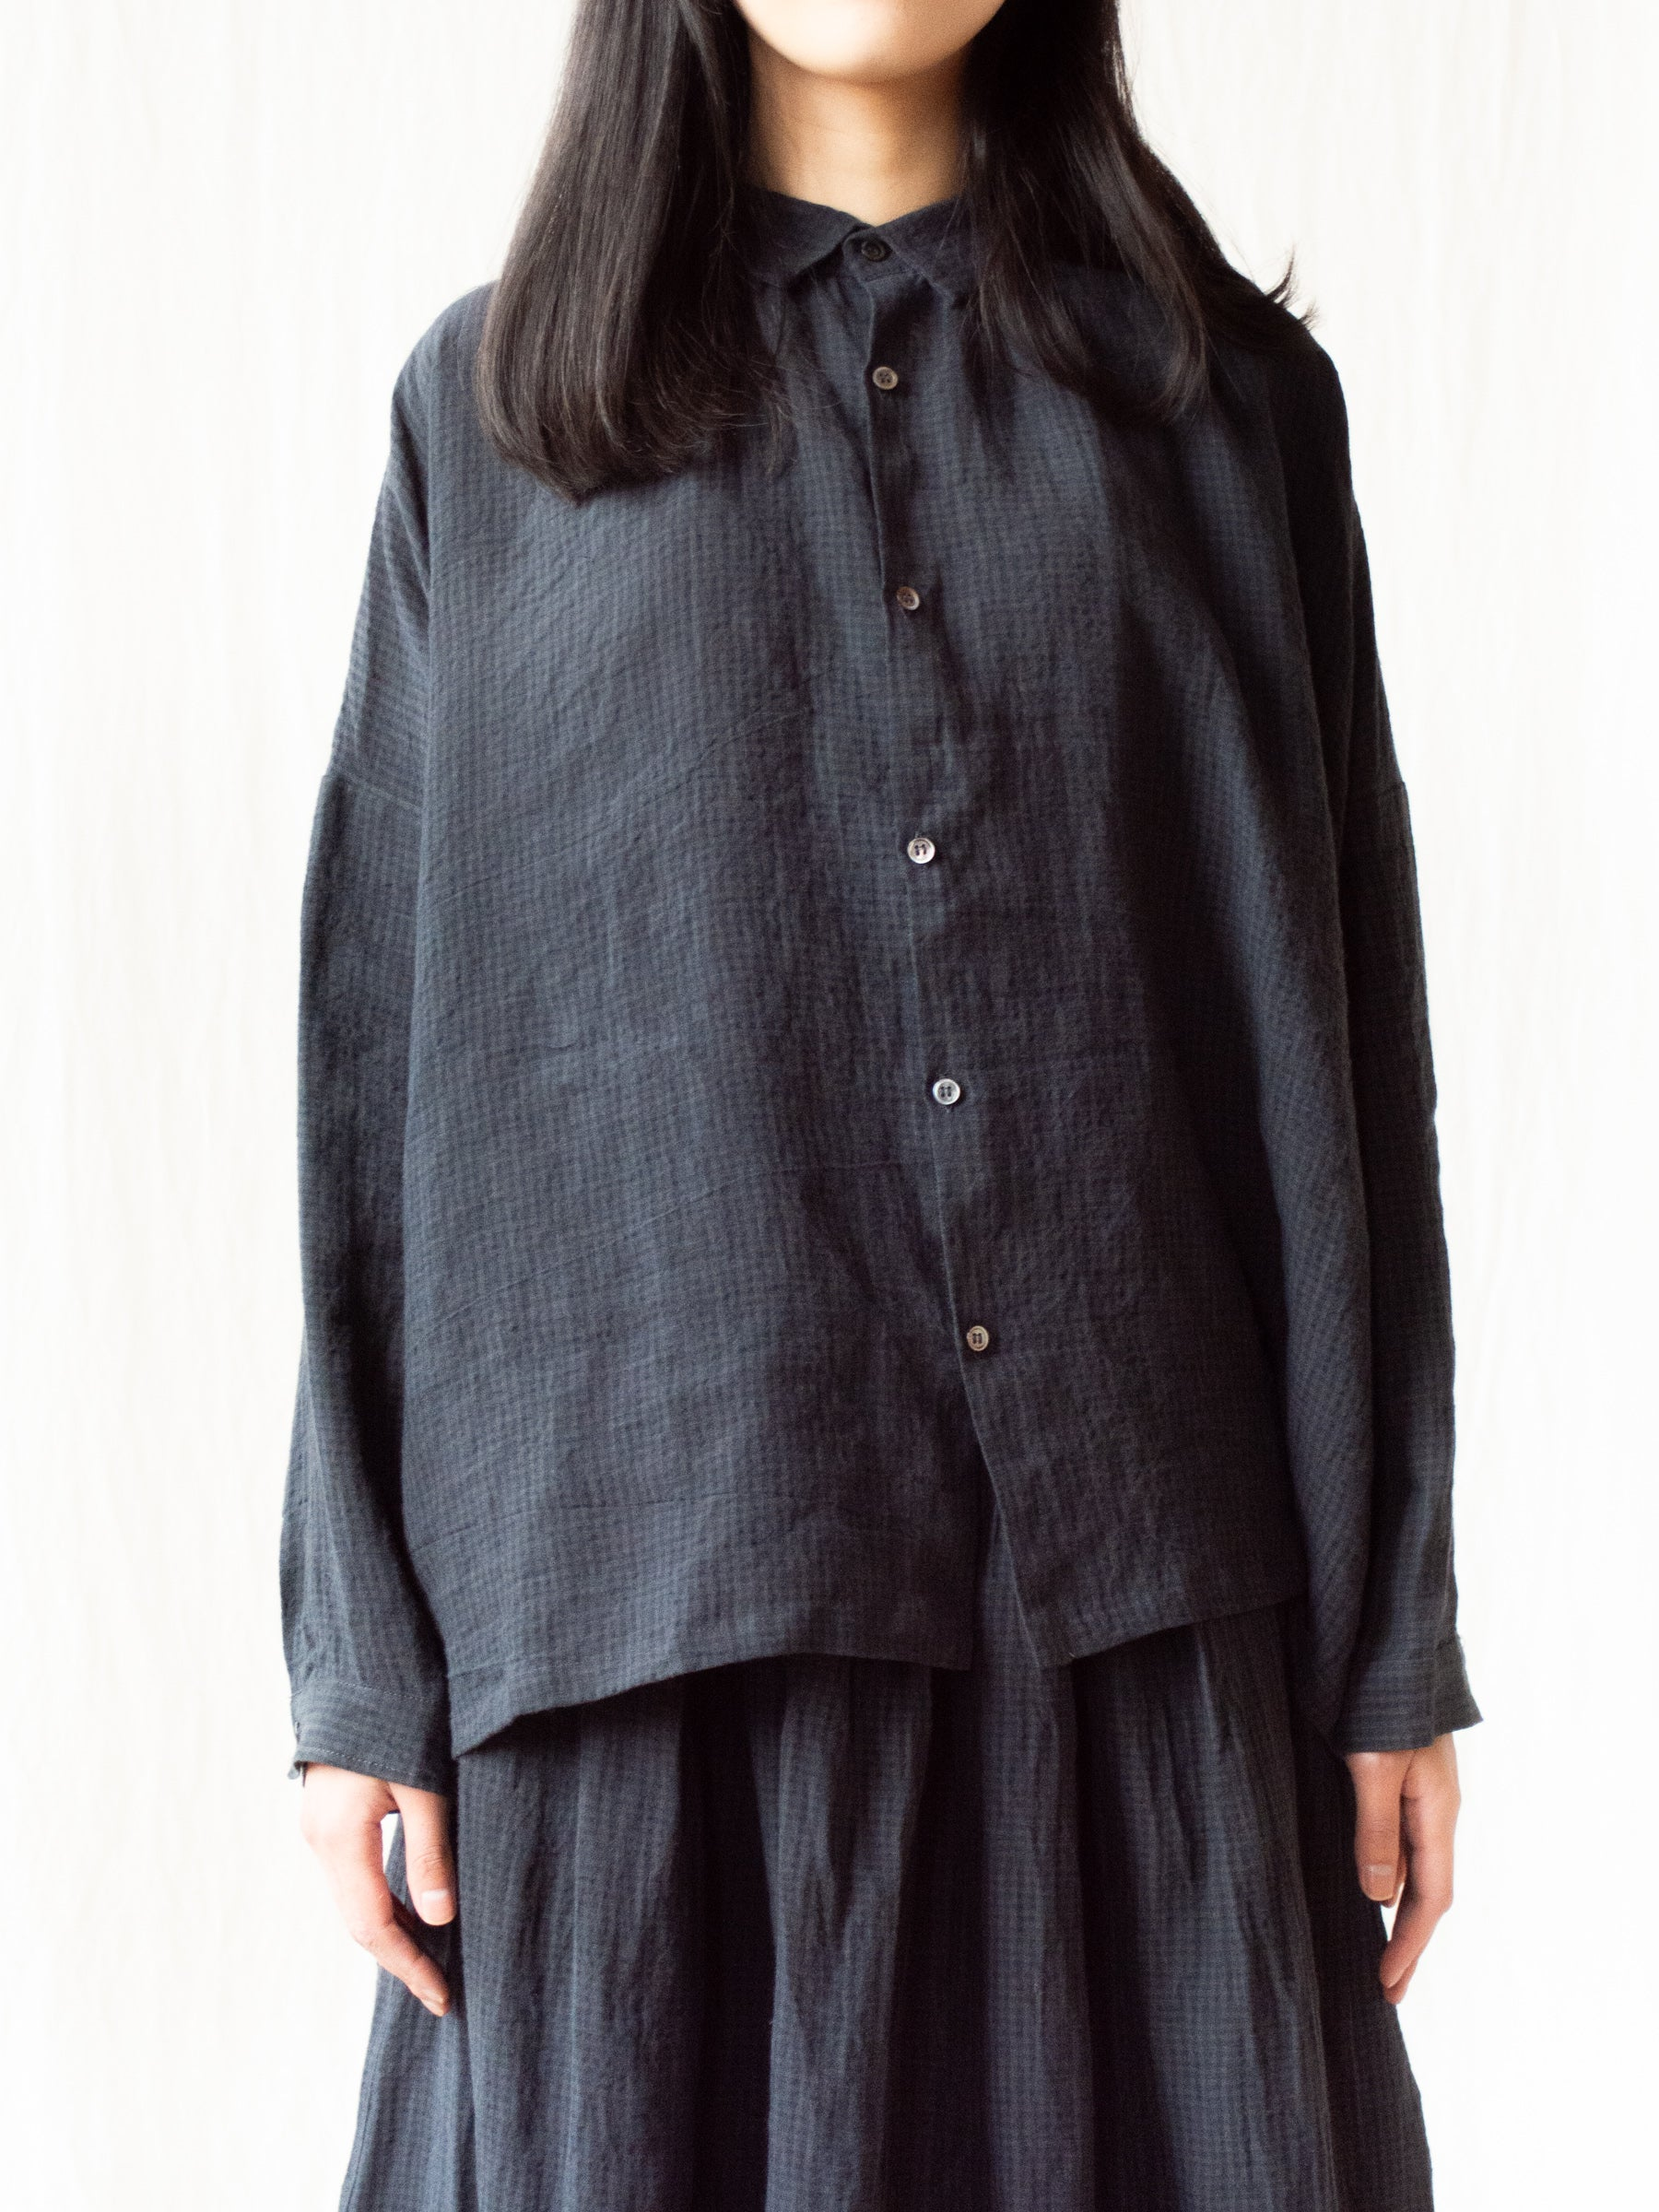 Linen AZUMADAKI Gingham Shirt - Black